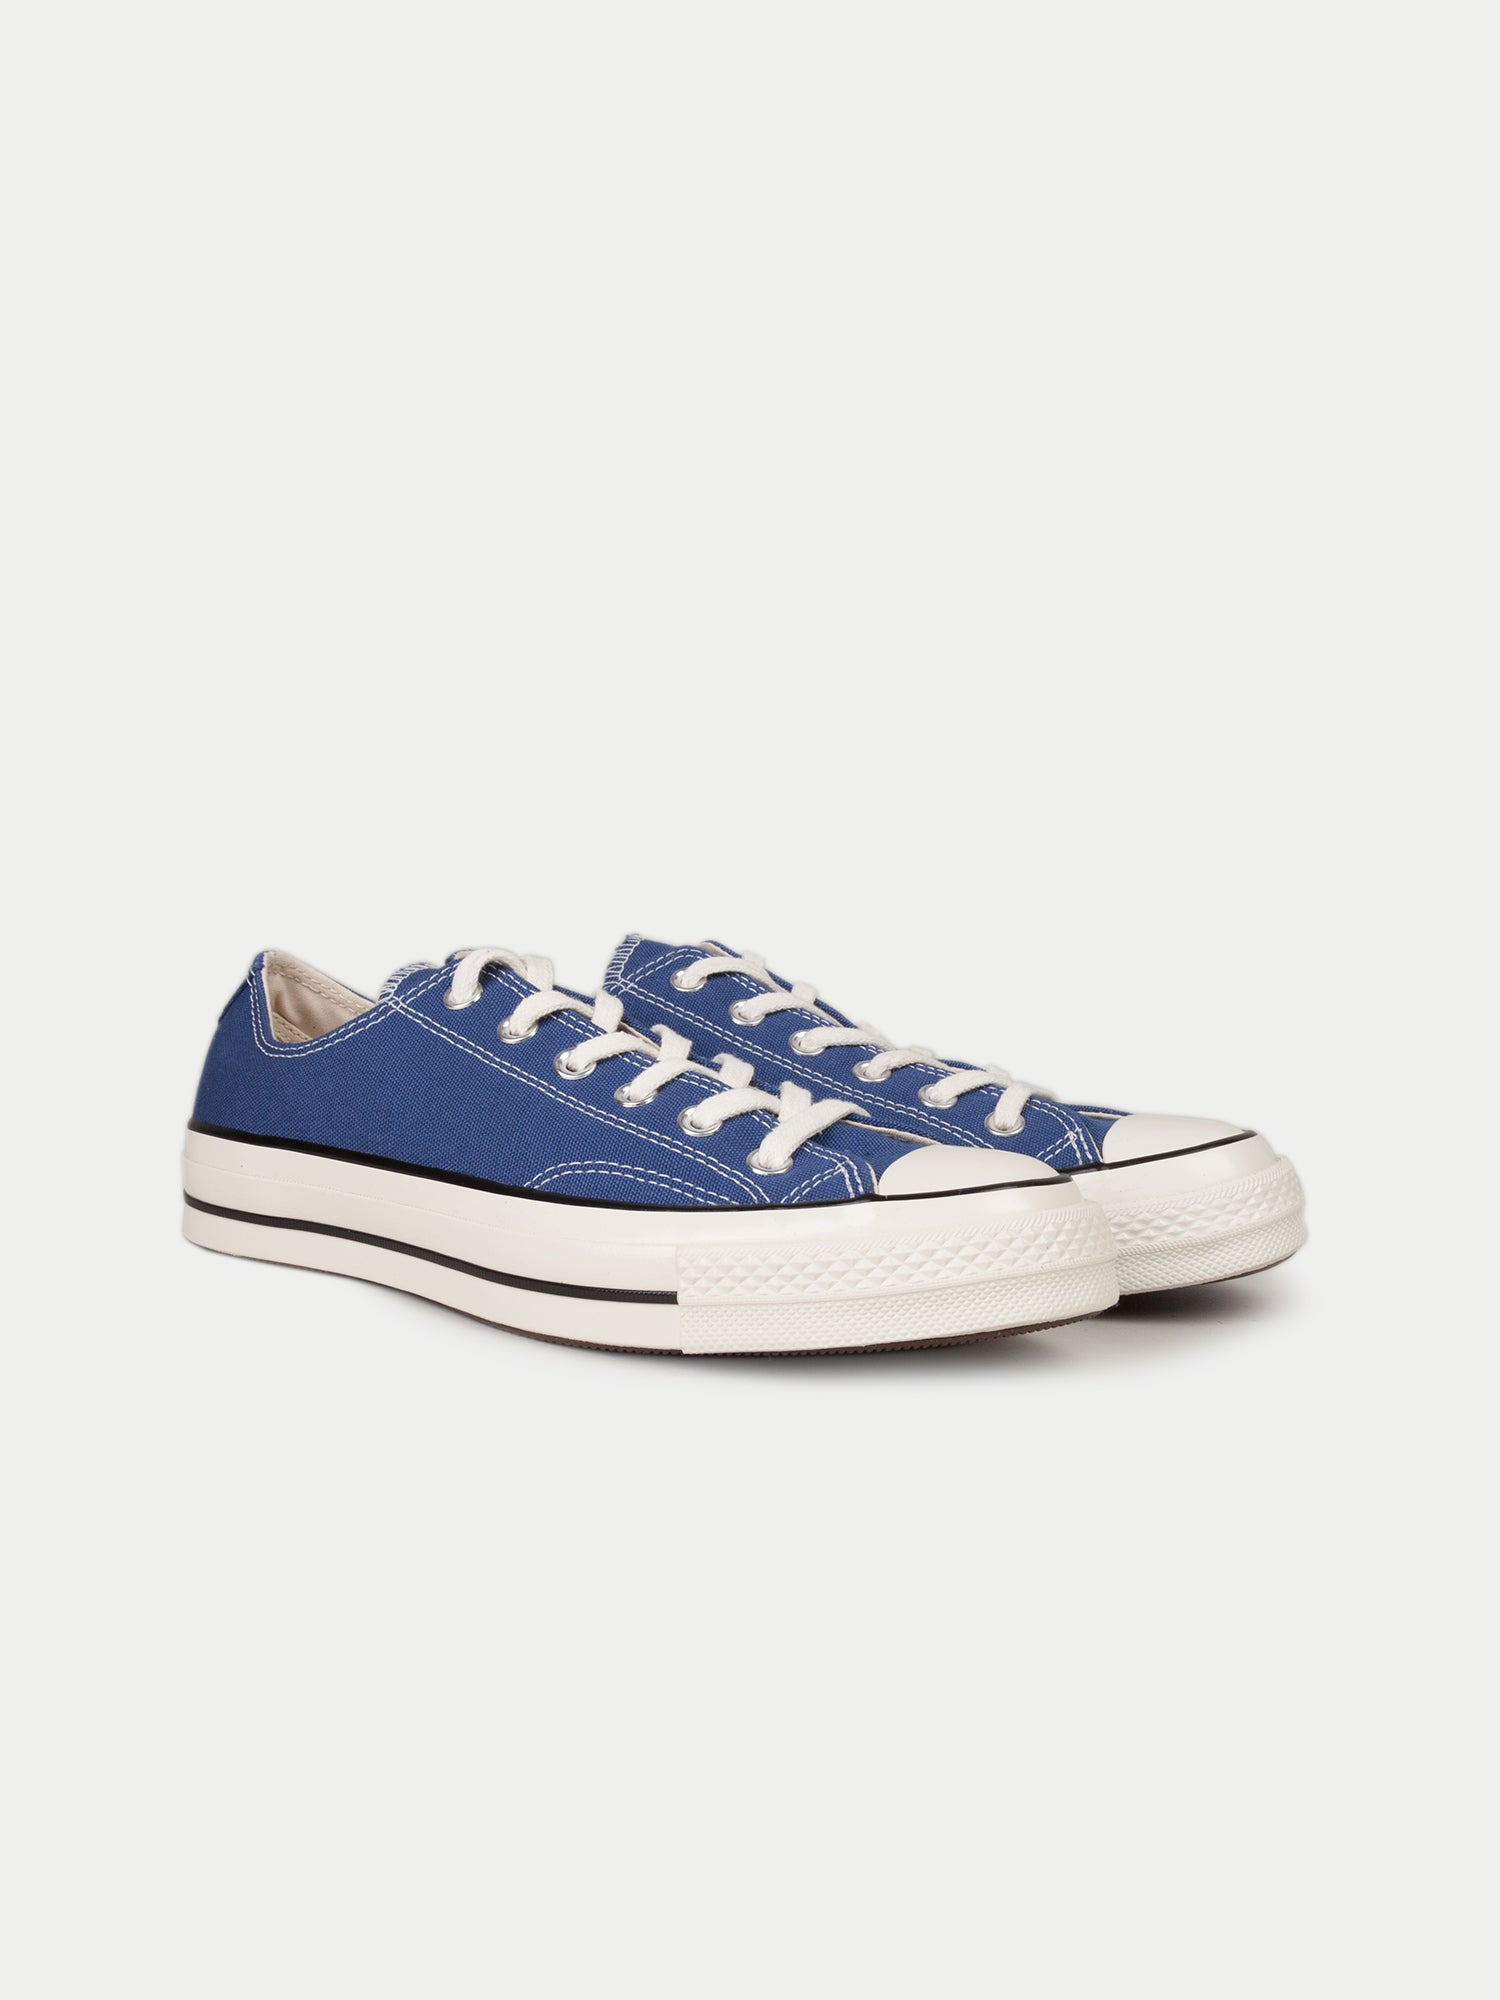 4a257a3ccbf29f Converse-Chuck-Taylor-All-Star-70 -Ox- True-Navy.jpg v 1533815099